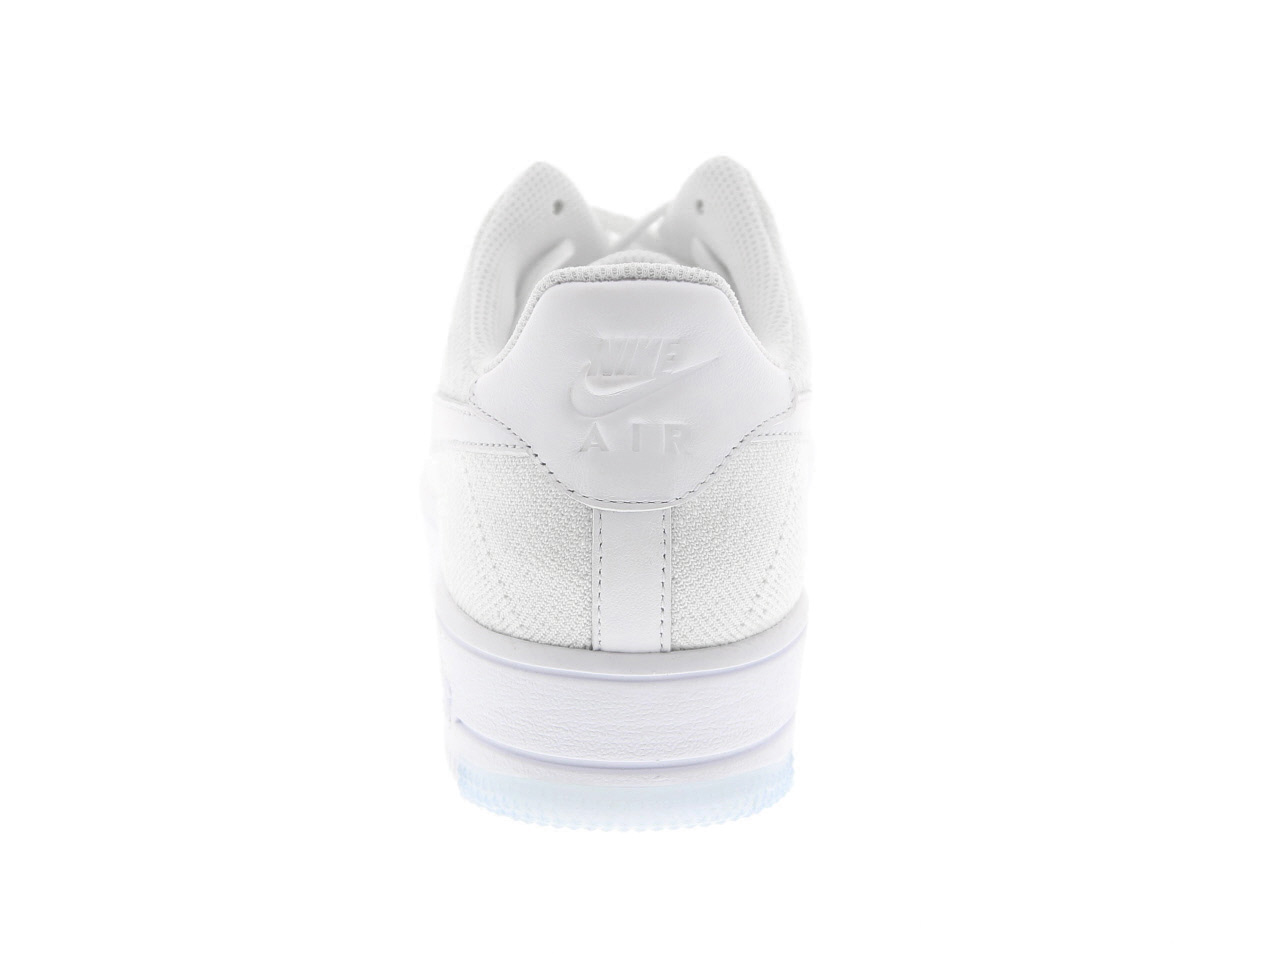 NIKE AIR FORCE 1 ULTRA FLYKNIT LOW (817419-100) WHITE/WHITE-ICE